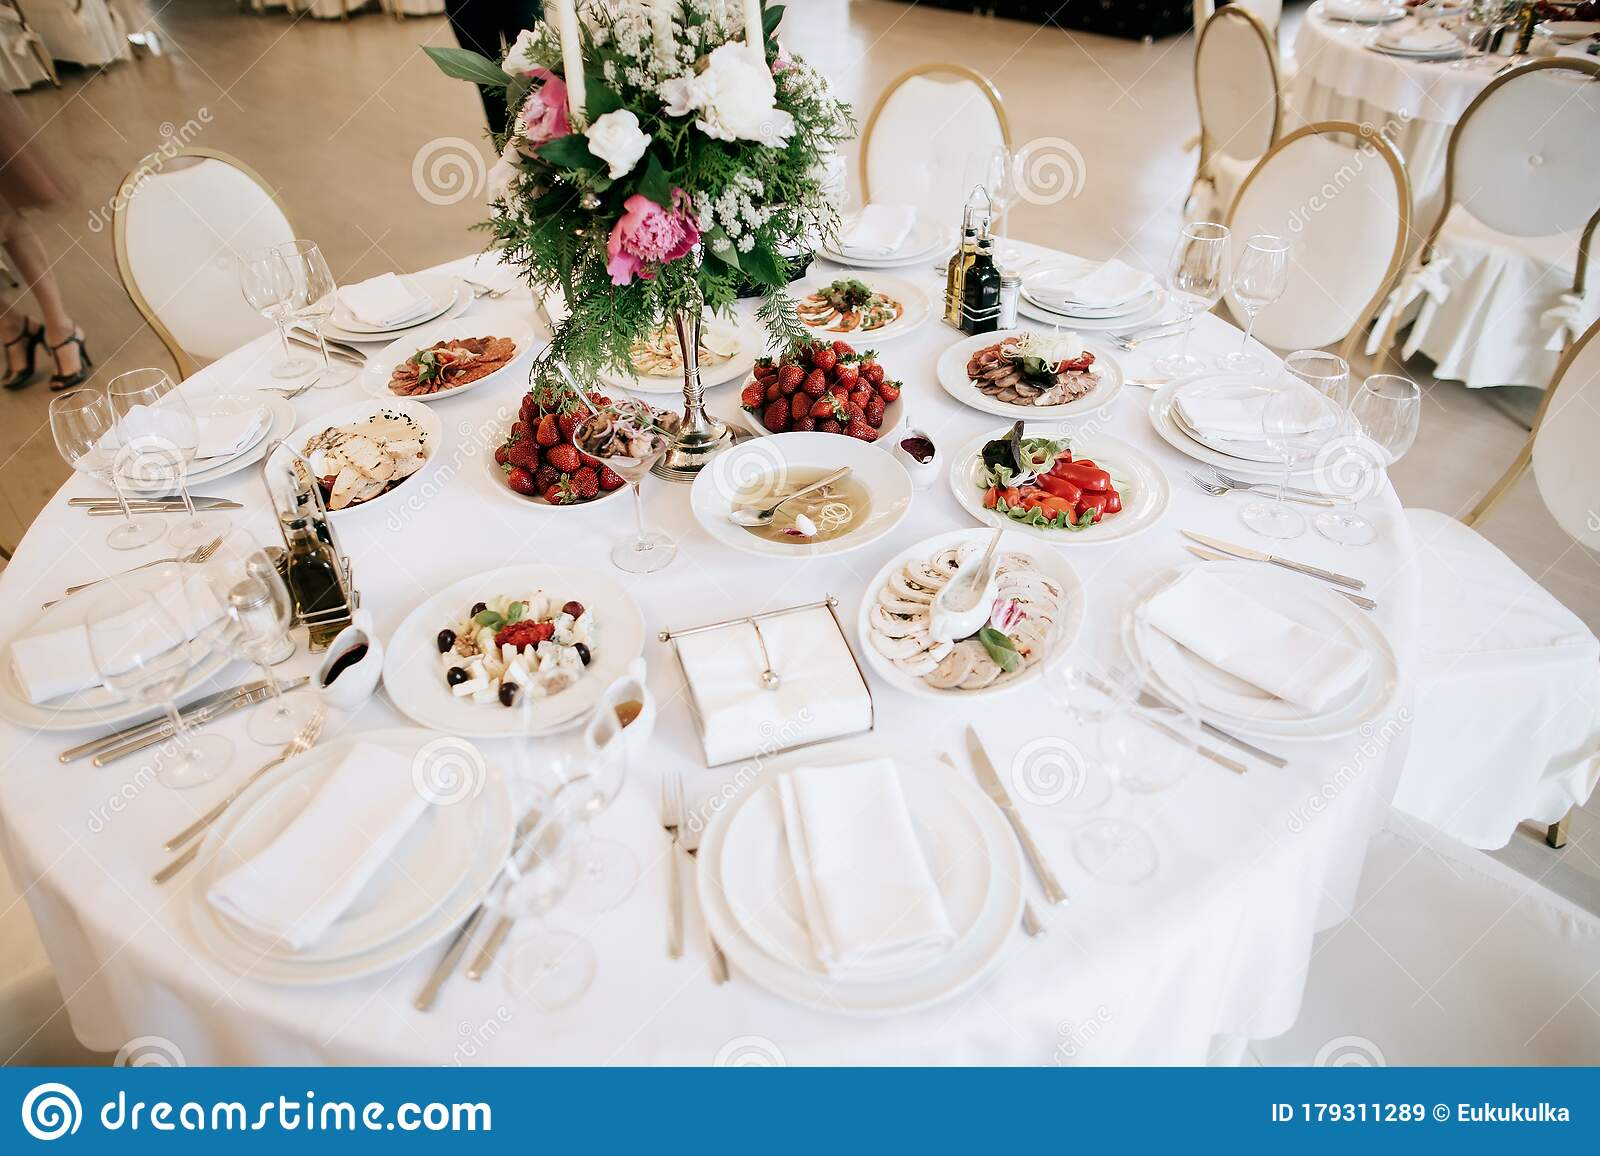 Restaurant Table With Food Catering Service Wedding Celebration Decoration Dinner Time Lunch Stock Image Image Of Luxury Dancefloor 179311289